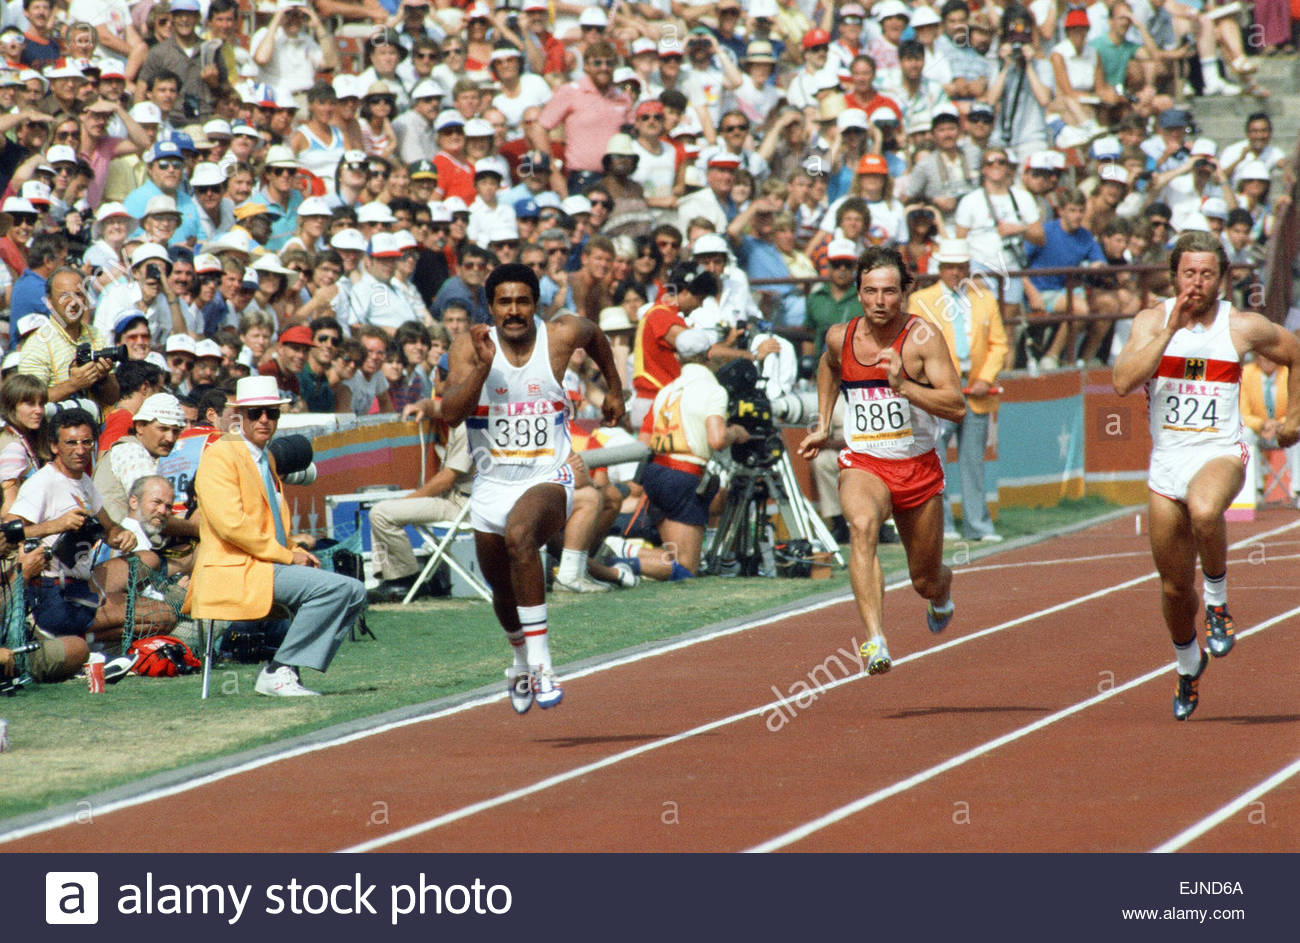 daley thompson stock photos daley thompson stock images alamy. Black Bedroom Furniture Sets. Home Design Ideas